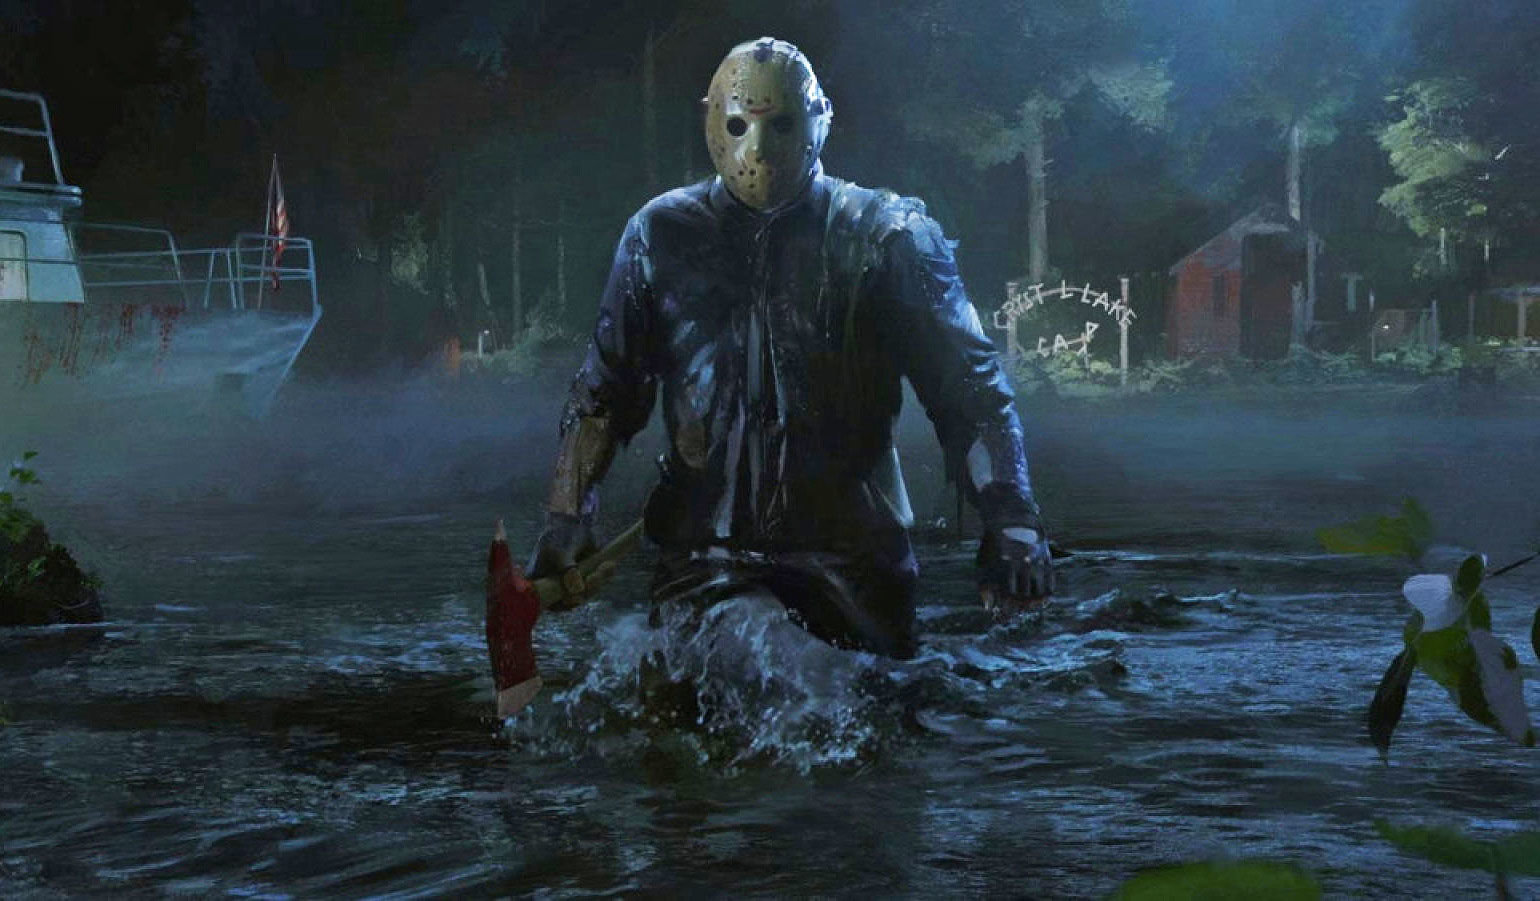 Nintendo Download: Friday the 13th